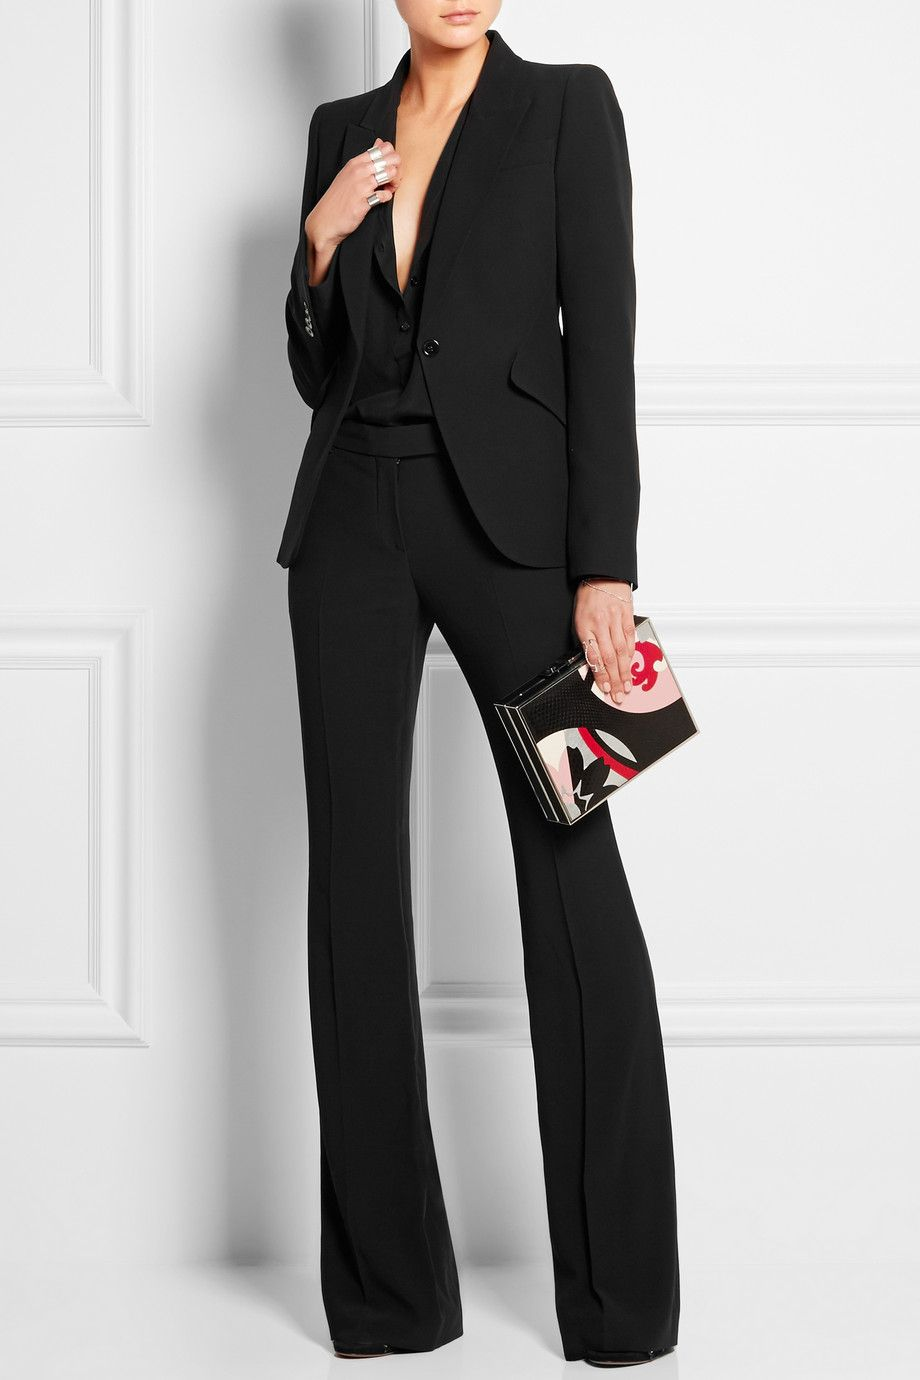 149fa39922 Alexander McQueen High-rise crepe flared pants and coordinating blazer